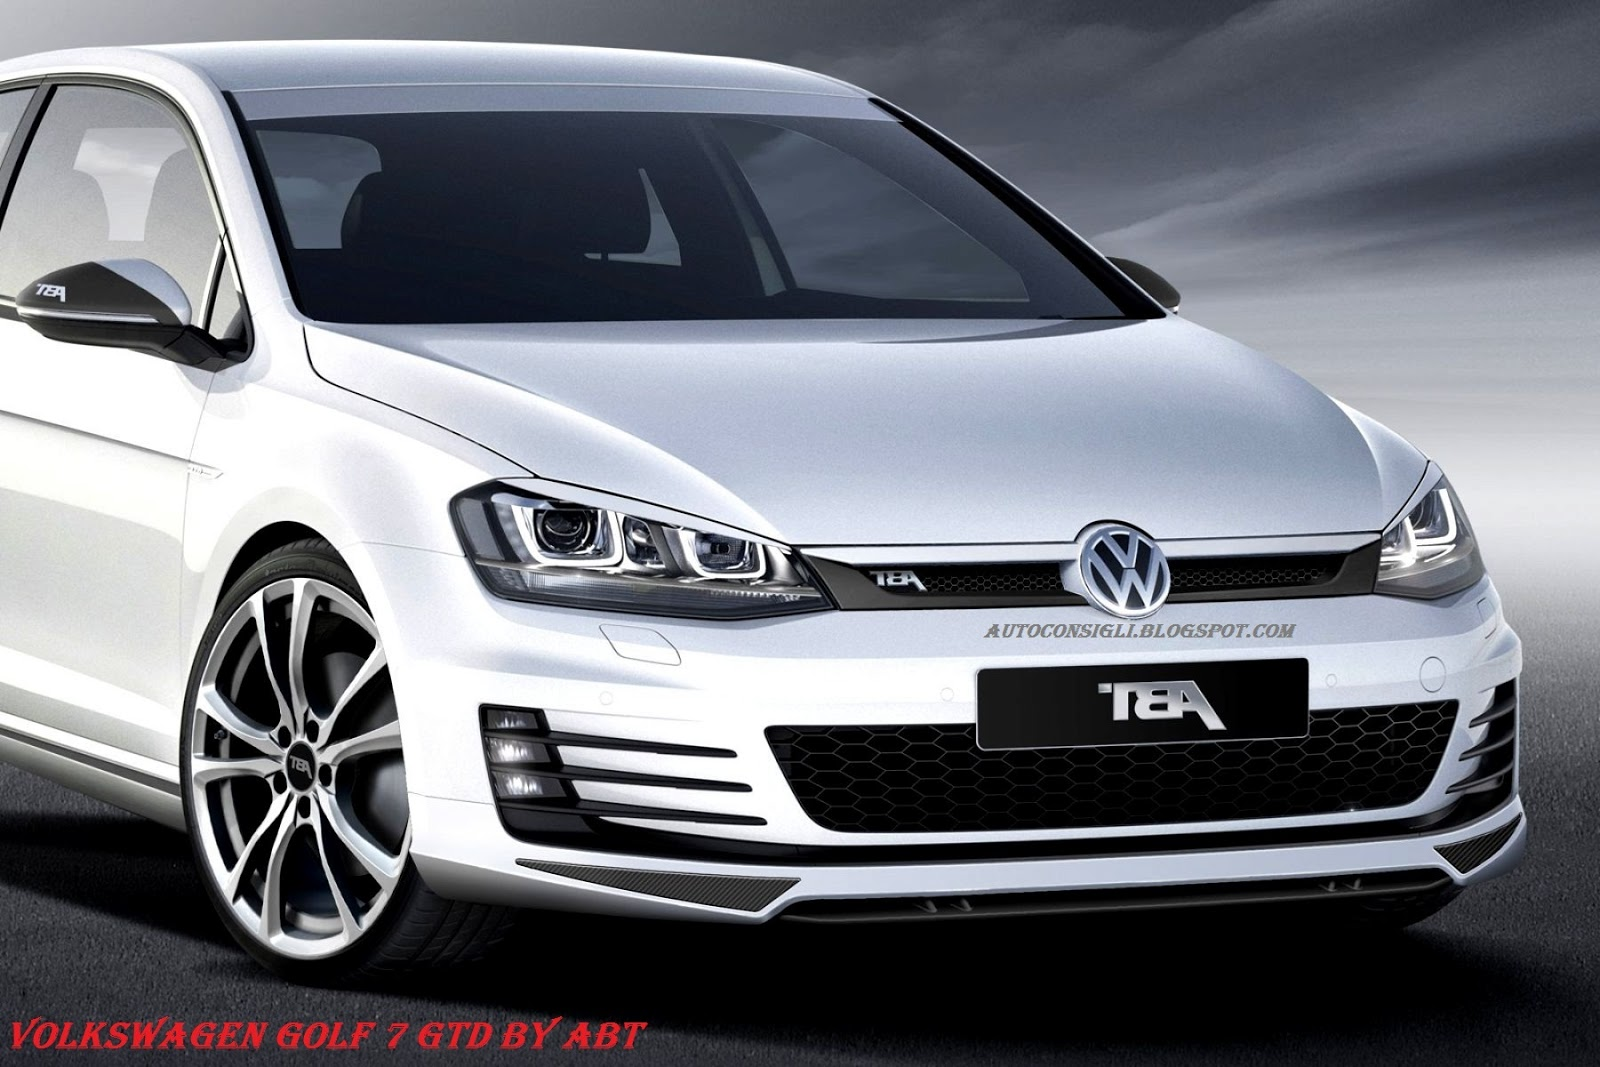 car al top 33 volkswagen golf 7 gtd elaborata dal tuner tedesco abt. Black Bedroom Furniture Sets. Home Design Ideas